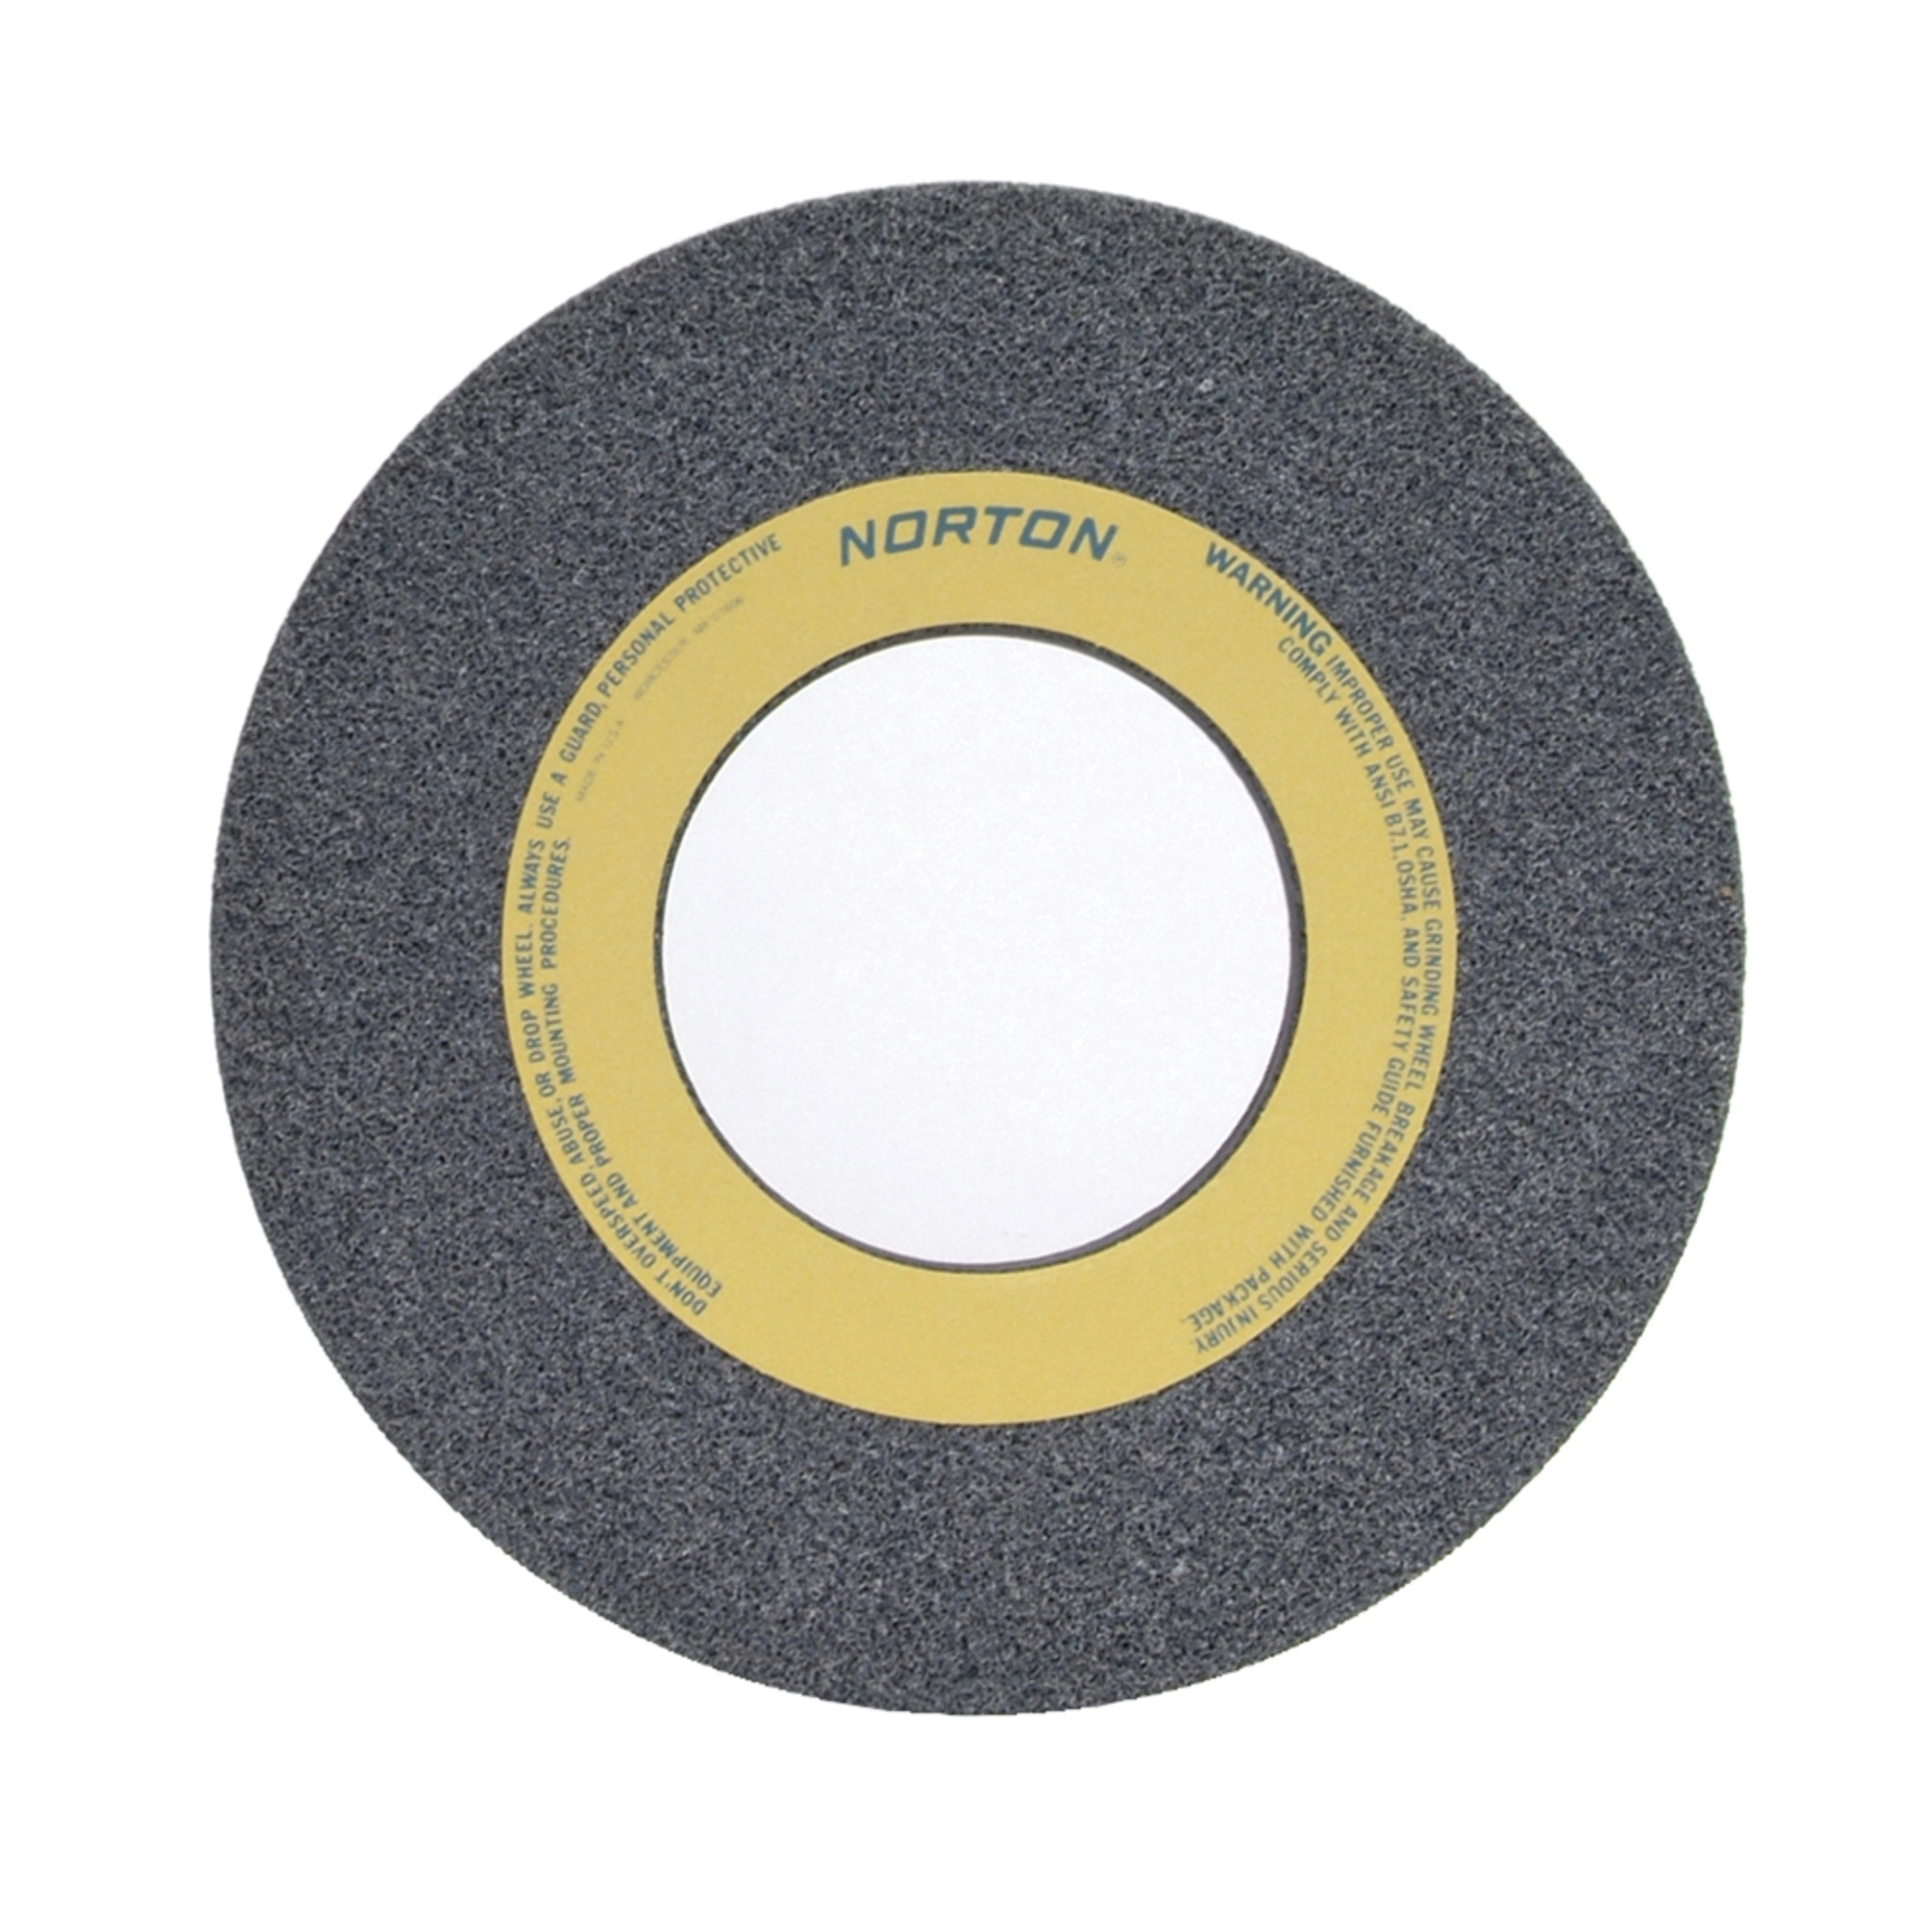 Norton® 66253263465 32A Straight Toolroom Wheel, 12 in Dia x 2 in THK, 5 in Center Hole, 60 Grit, Aluminum Oxide Abrasive